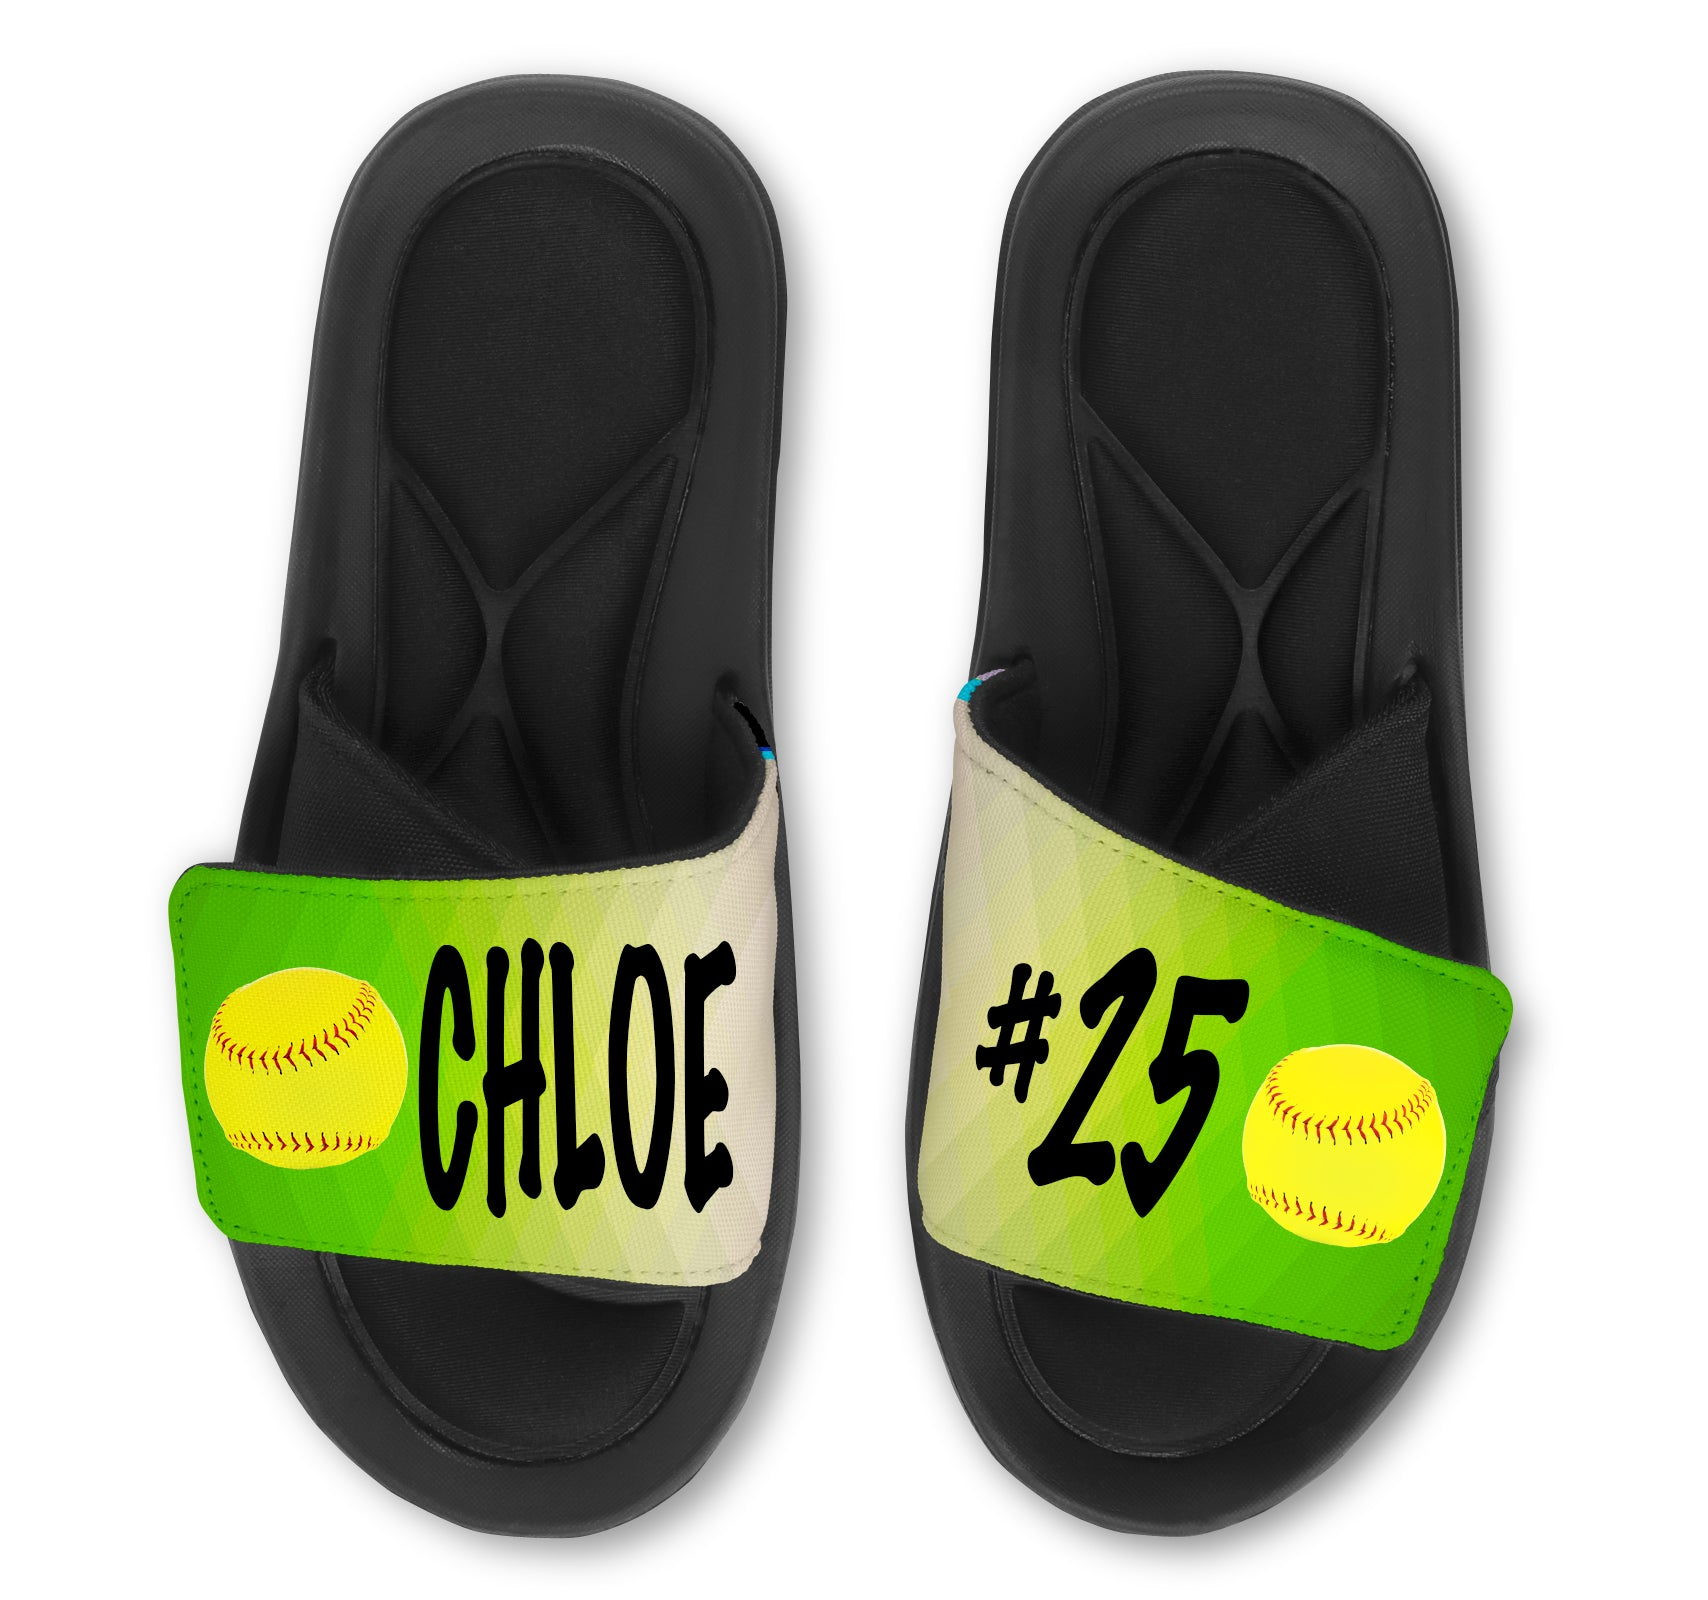 Softball Abstract Custom Slides / Sandals - Choose your Background!